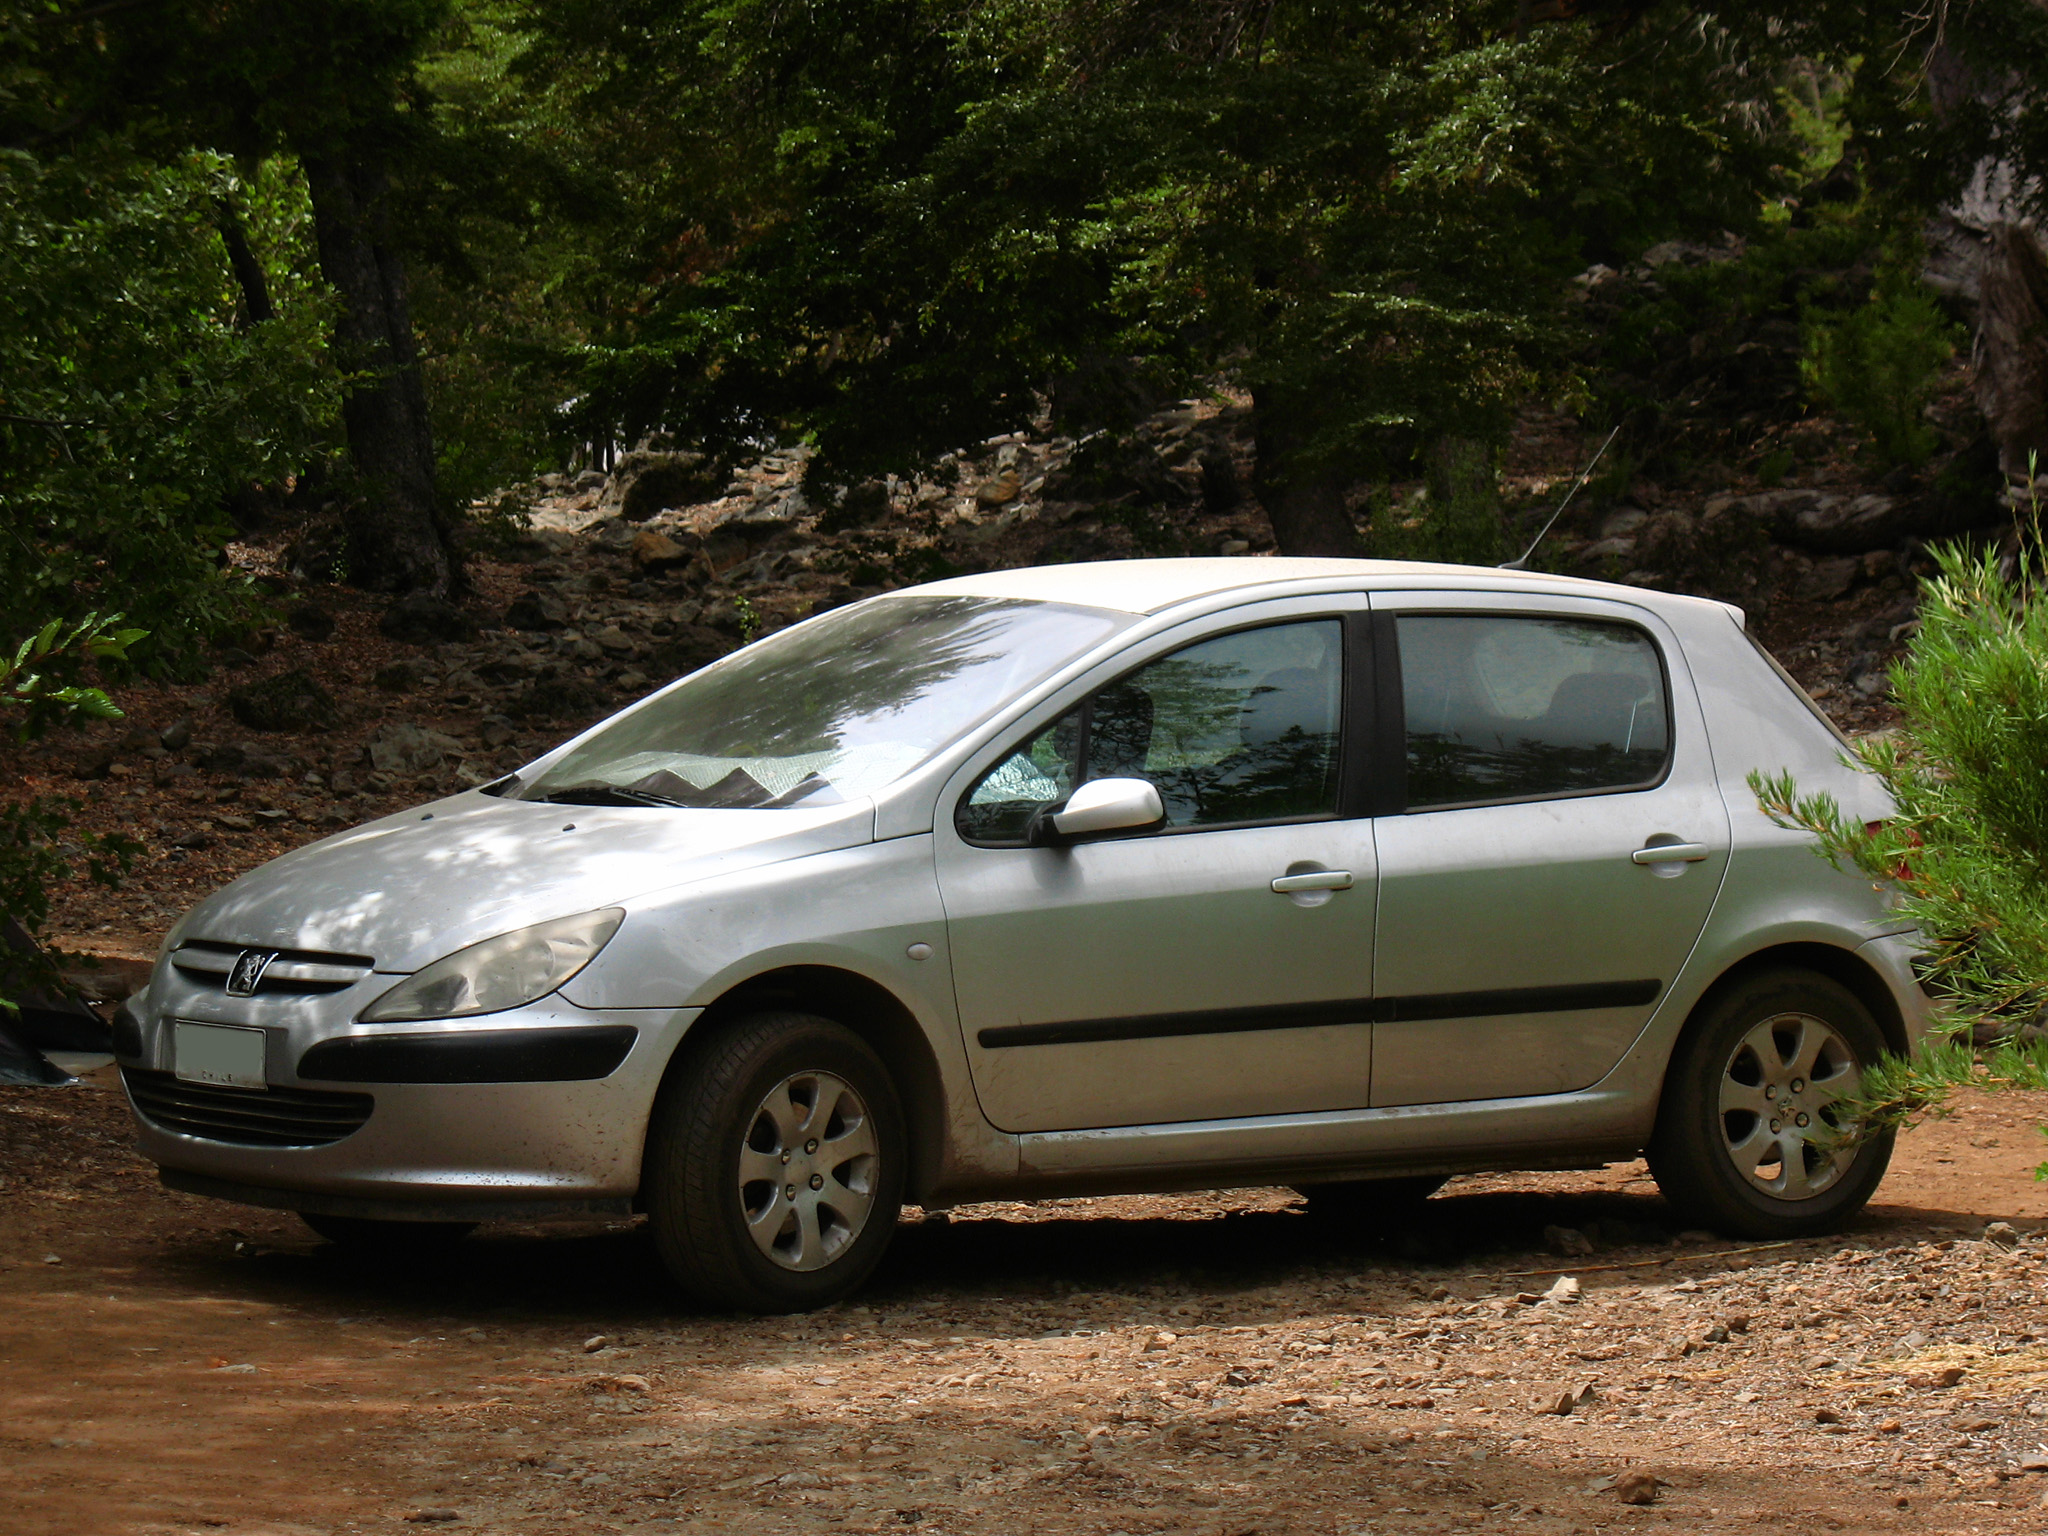 File:Peugeot 307 1.6 XT 2003 (9571246027).jpg - Wikimedia Commons